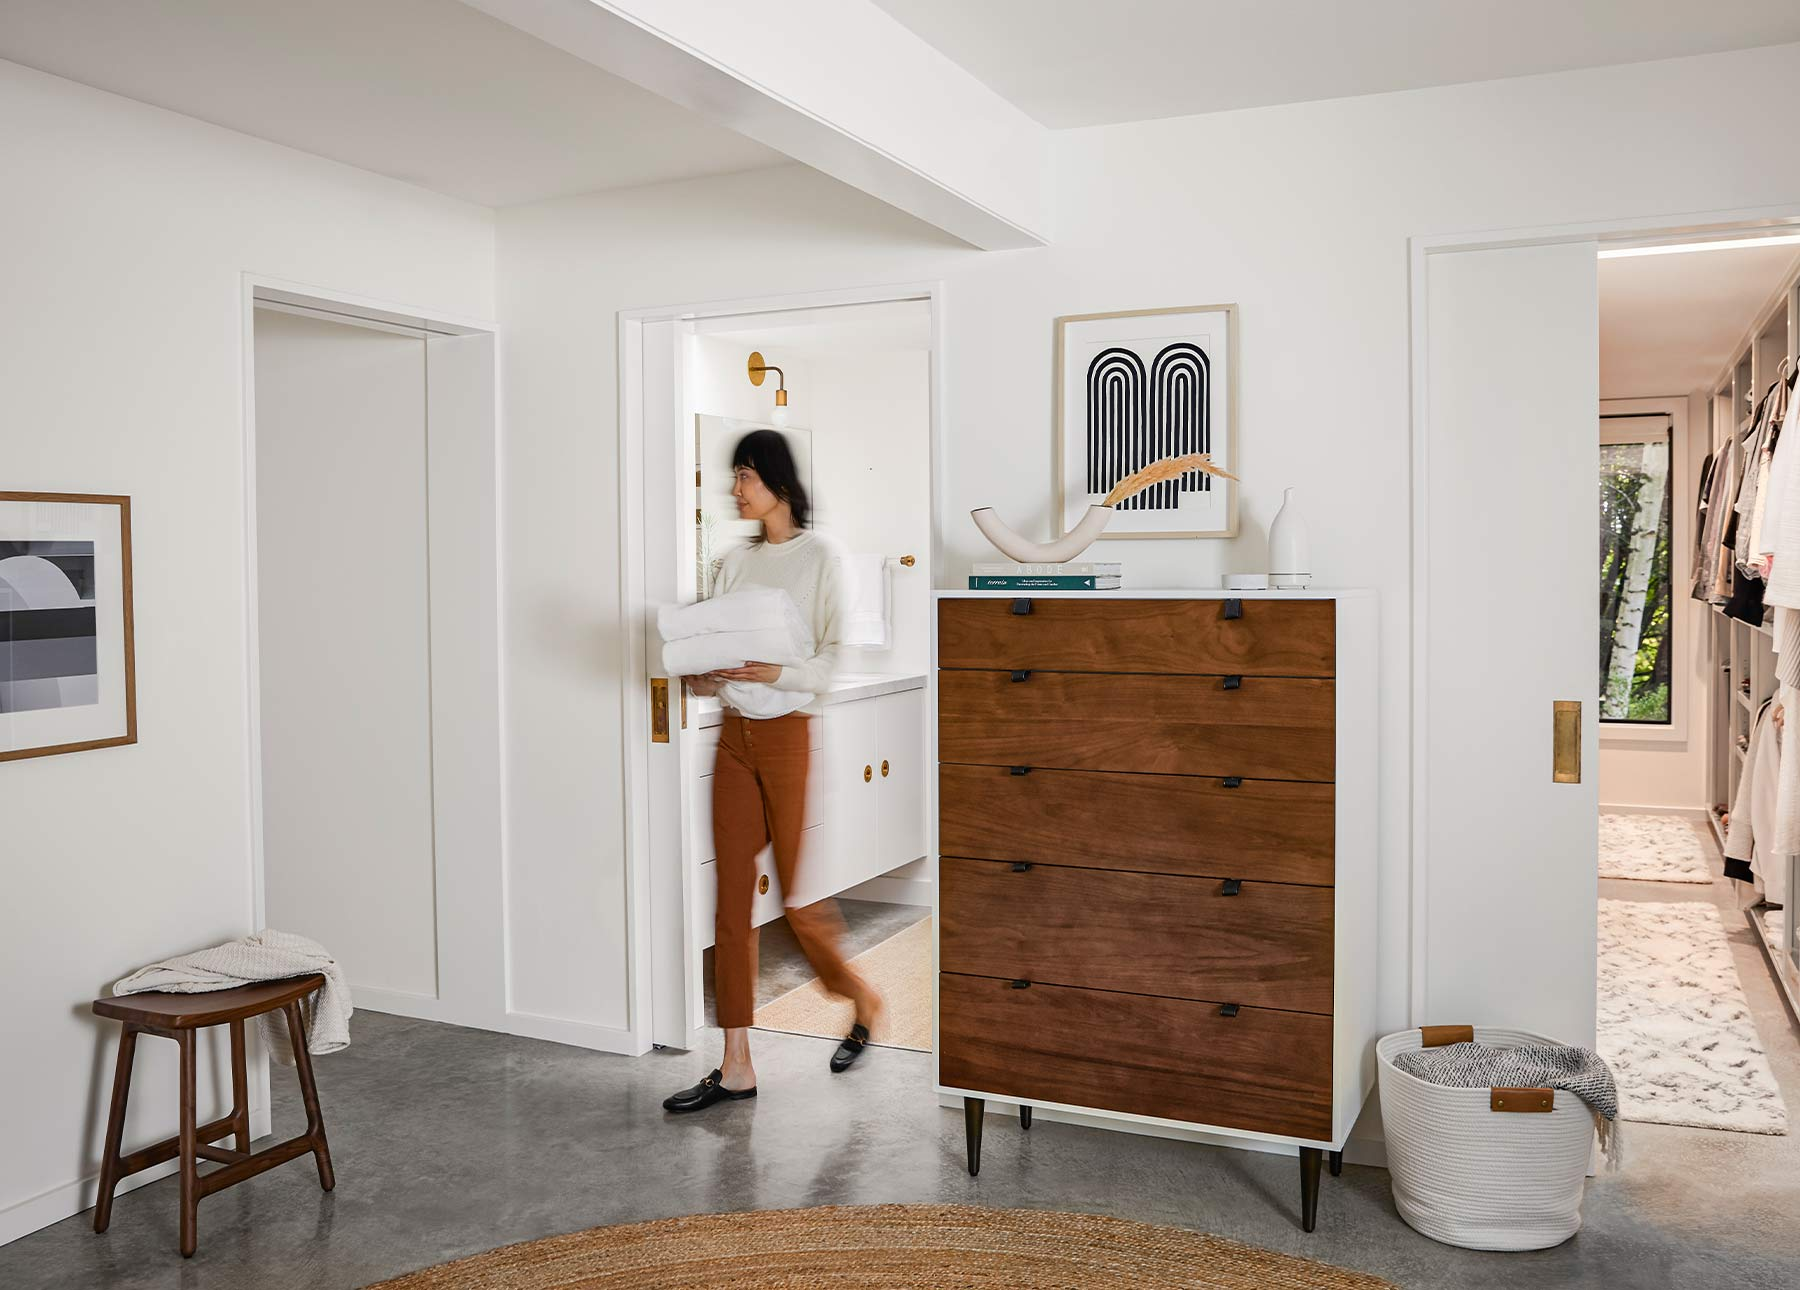 A tall Envelo Dresser in a white room with a woman walking by.